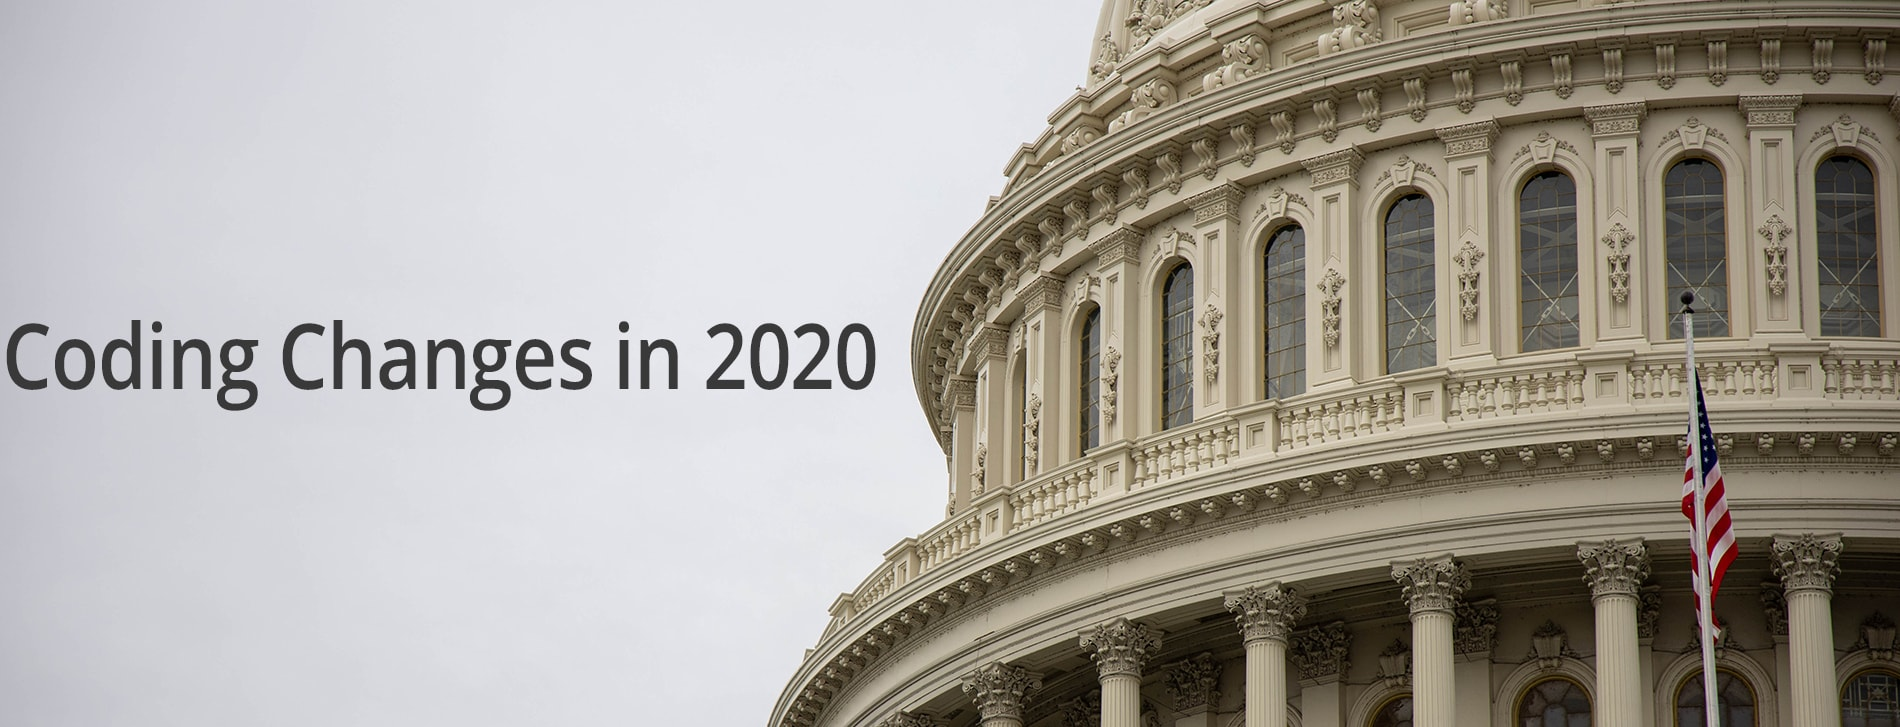 coding changes for 2020 with US capitol in background